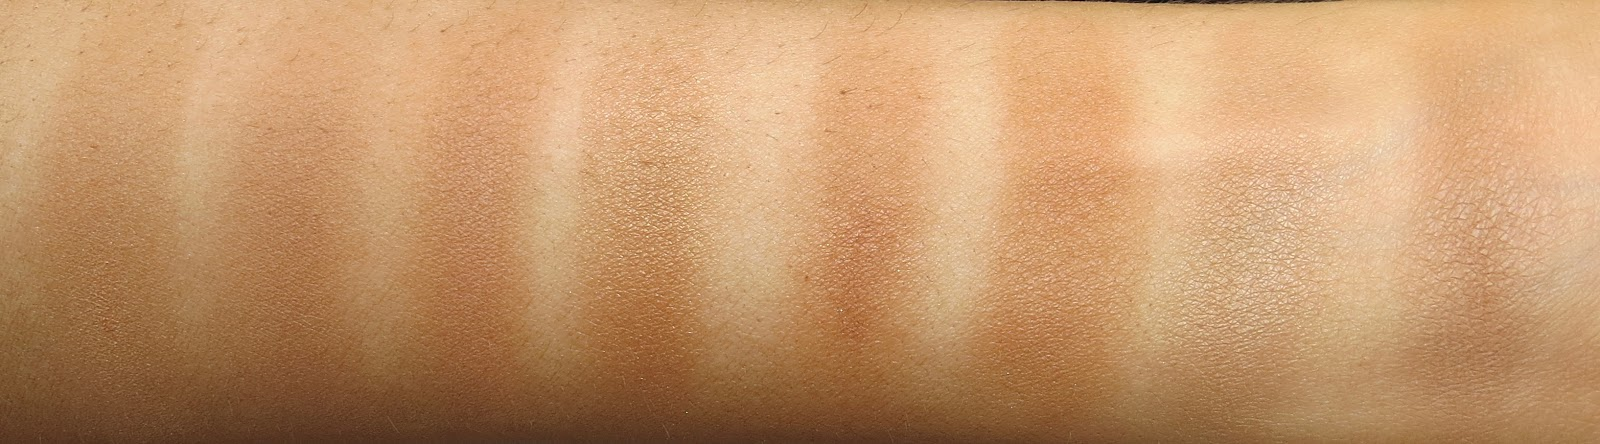 O!Mega Bronzer Coconut Perfect Tan by Marc Jacobs Beauty #12